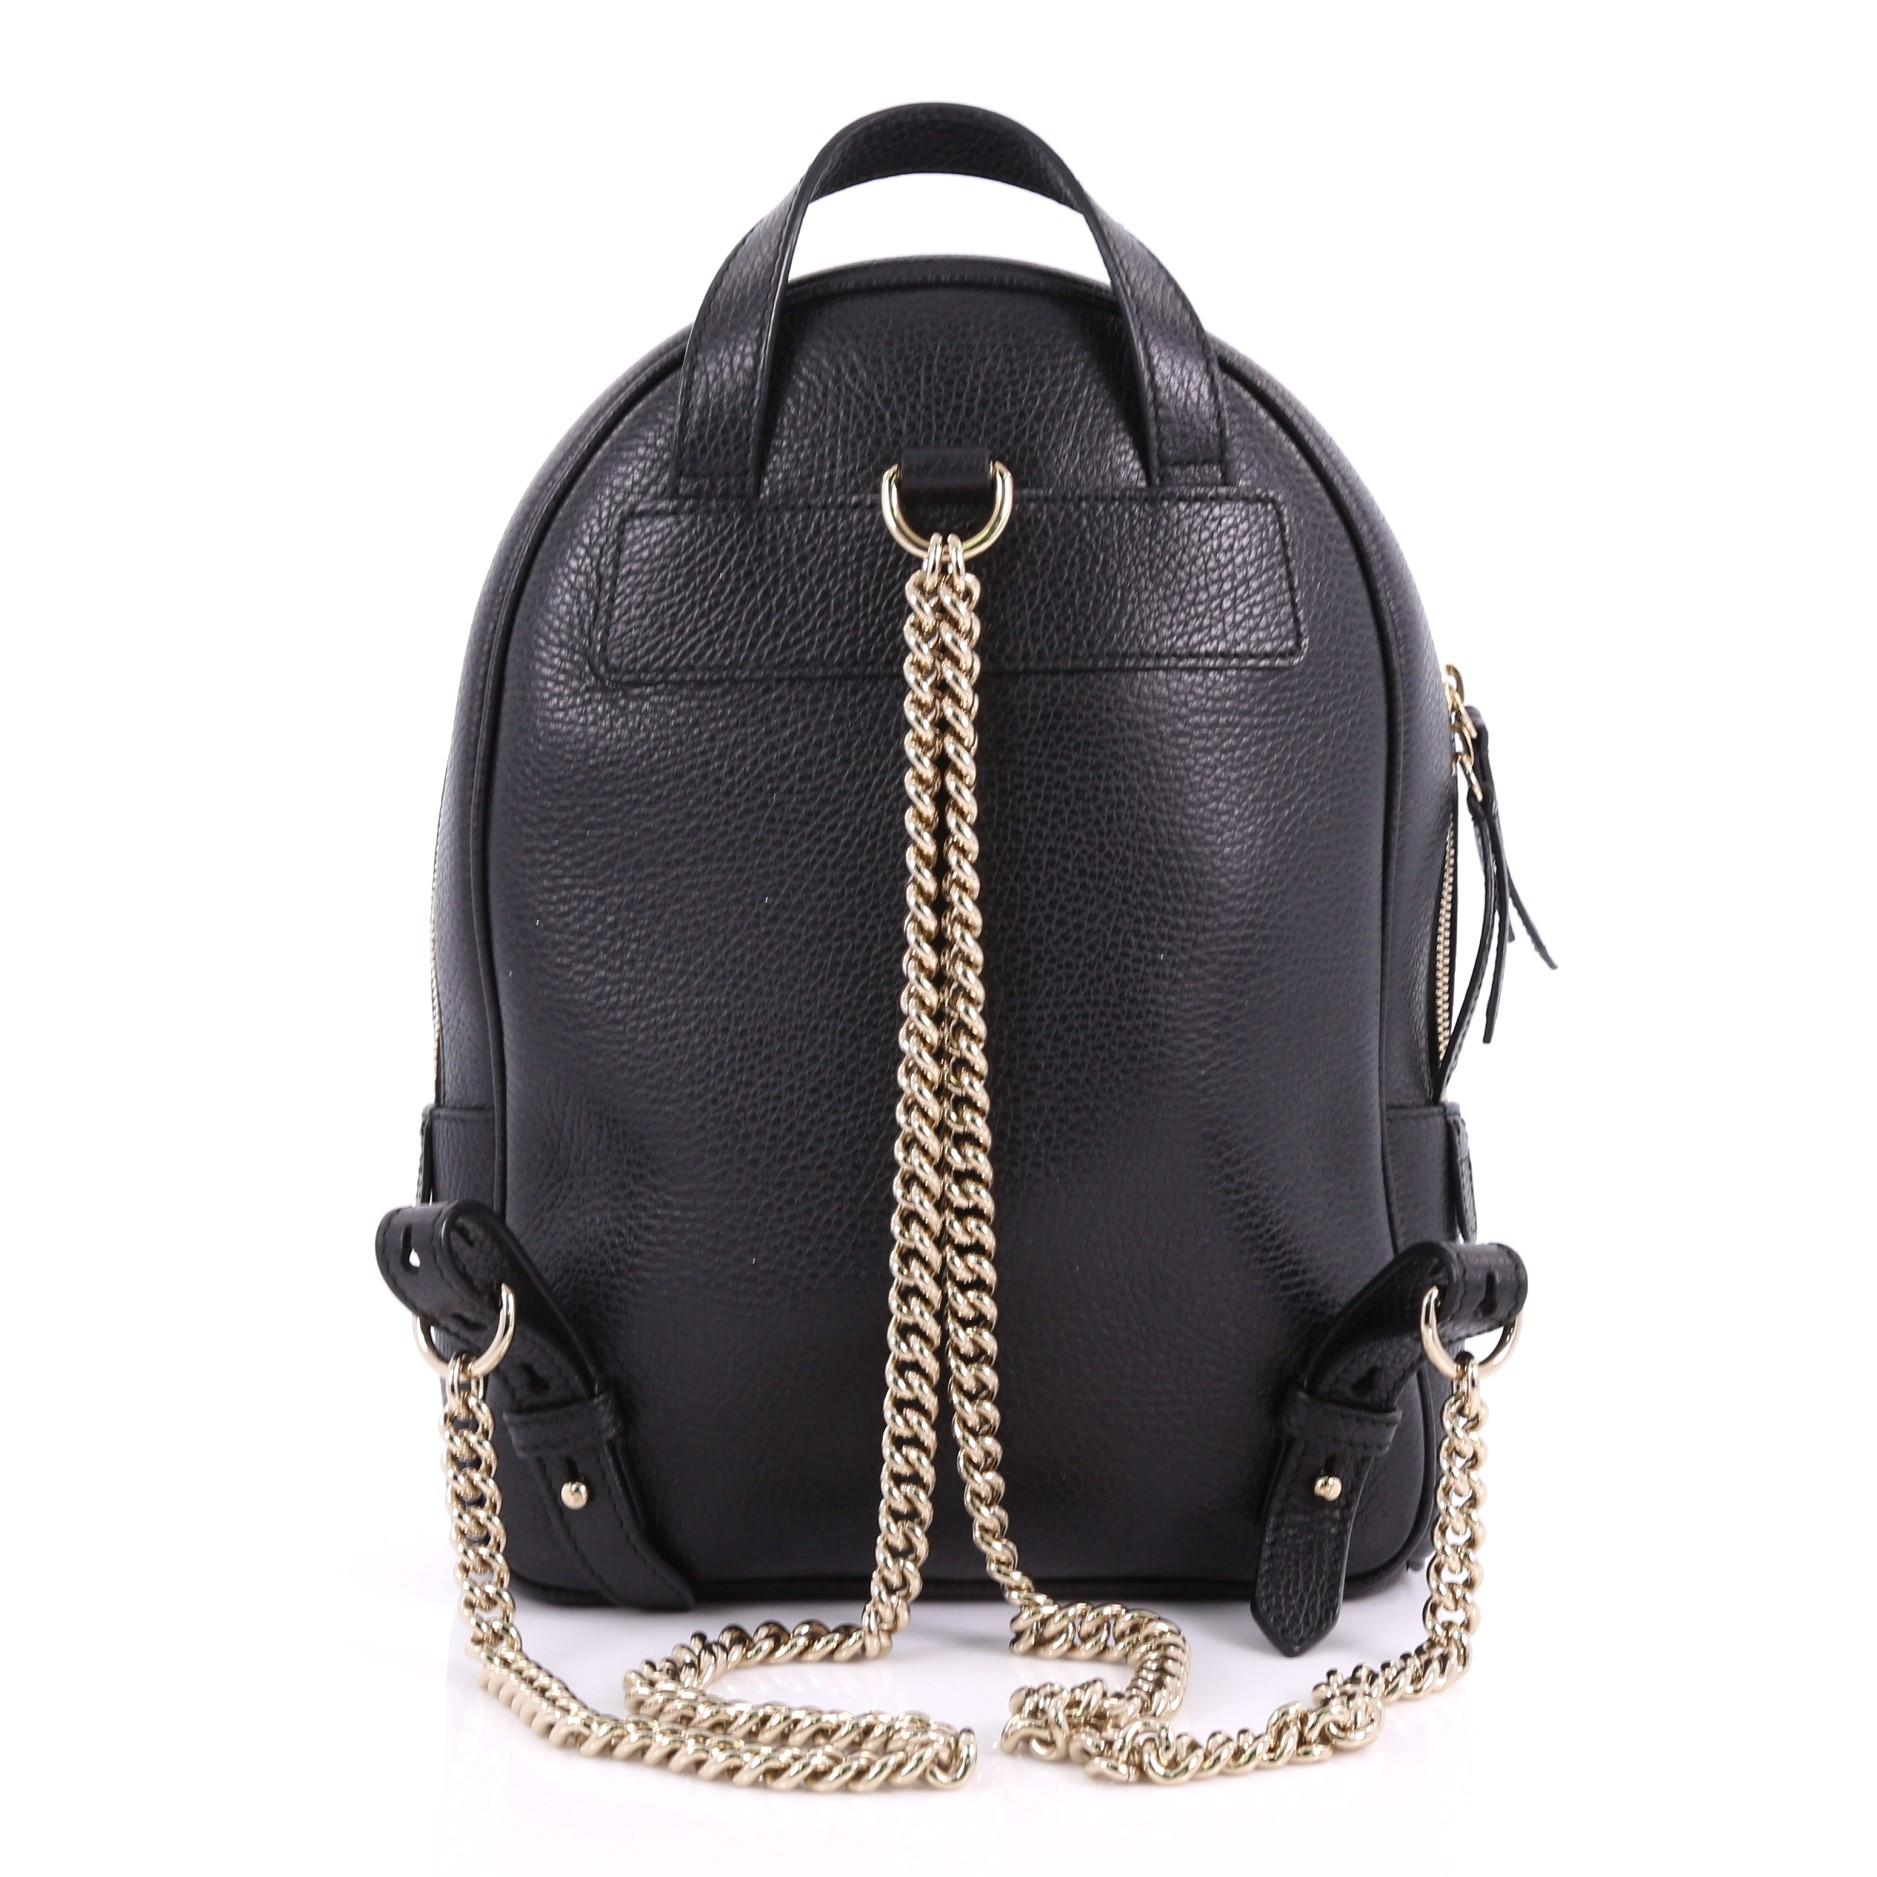 f5ce3a521 Gucci Soho Chain Backpack Leather, at 1stdibs